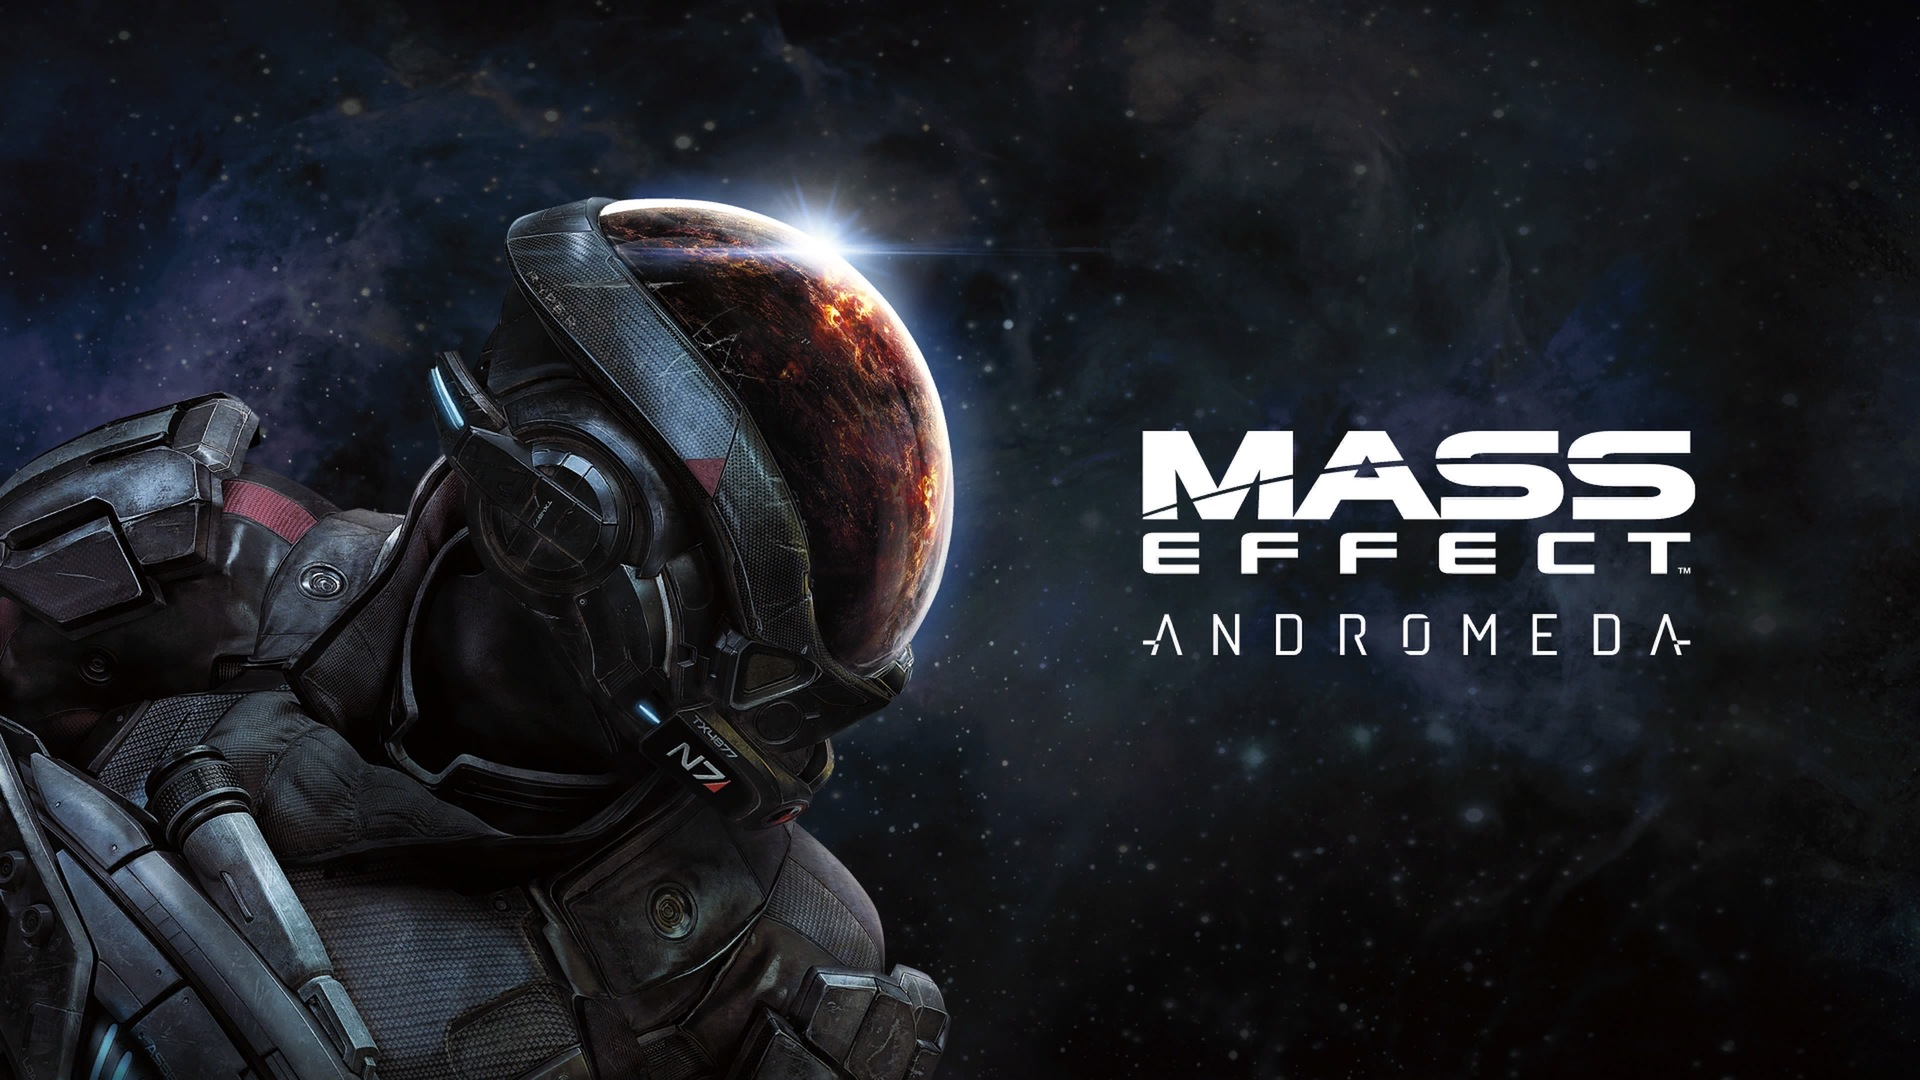 Mass Effect Andromeda 1920x1080